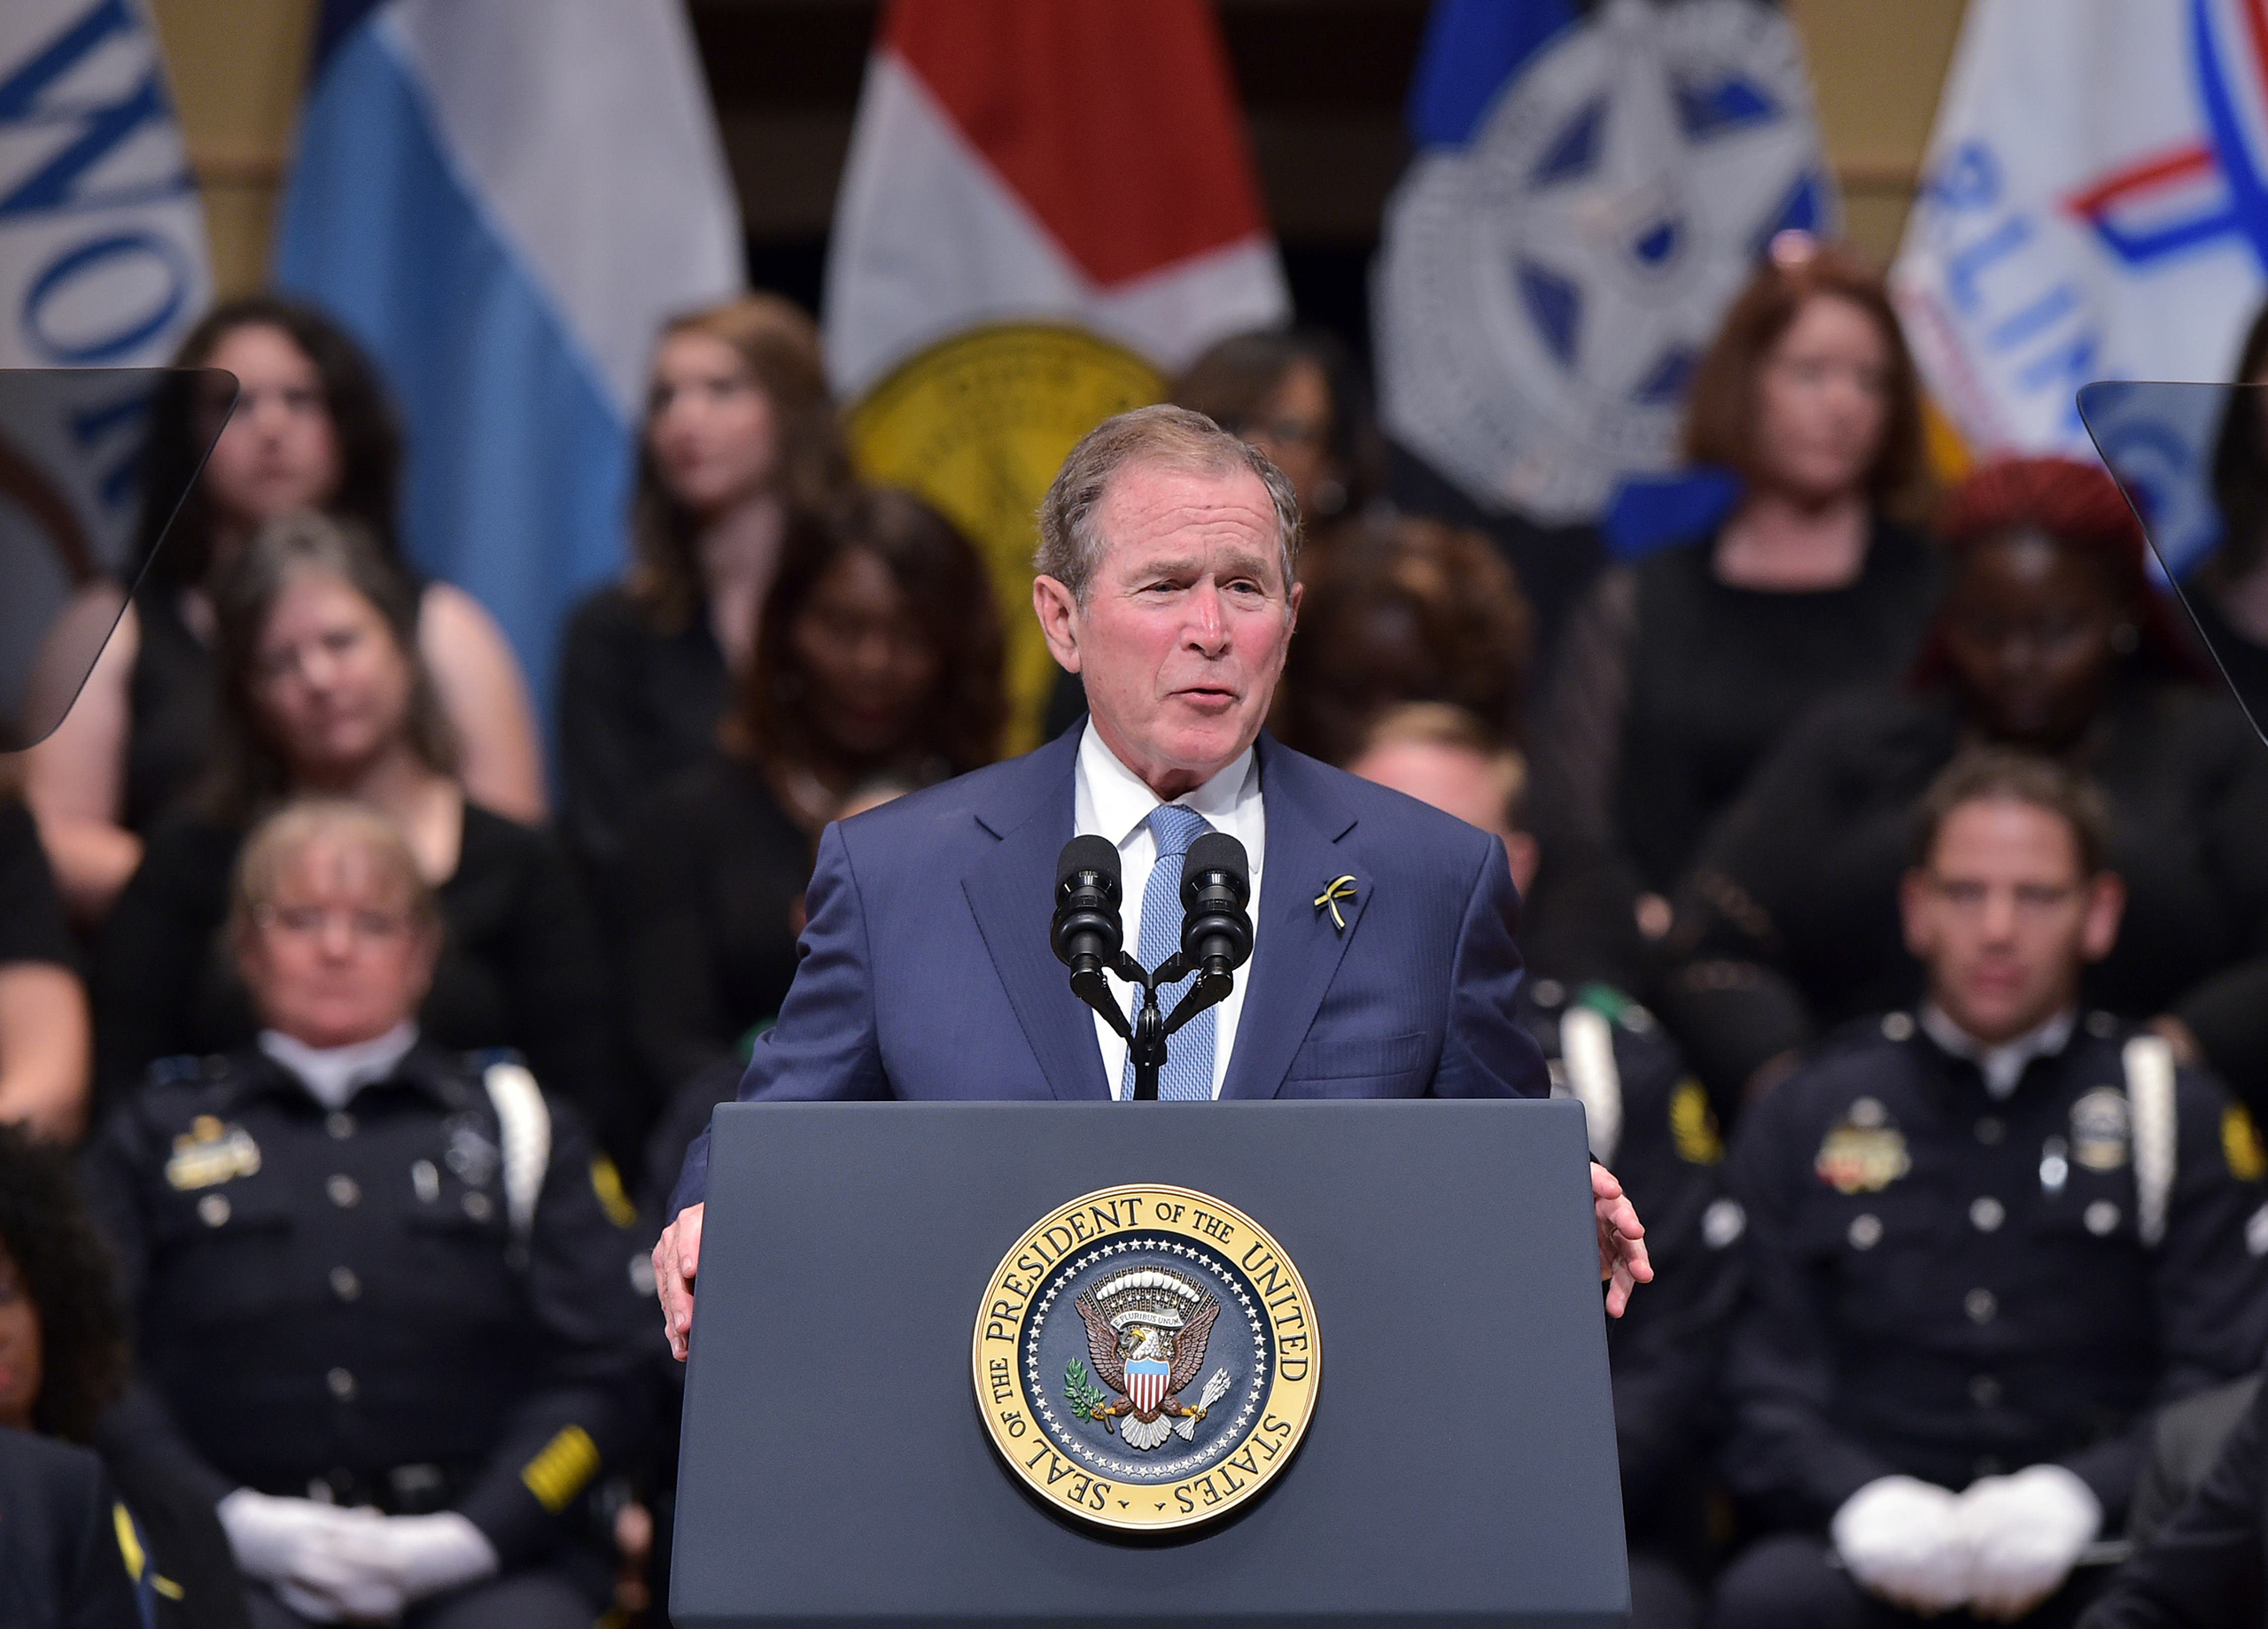 George W. Bush speaks during an interfaith memorial service for the victims of the Dallas police shooting at the Morton H. Meyerson Symphony Center in Dallas, Texas, on July 12, 2016.